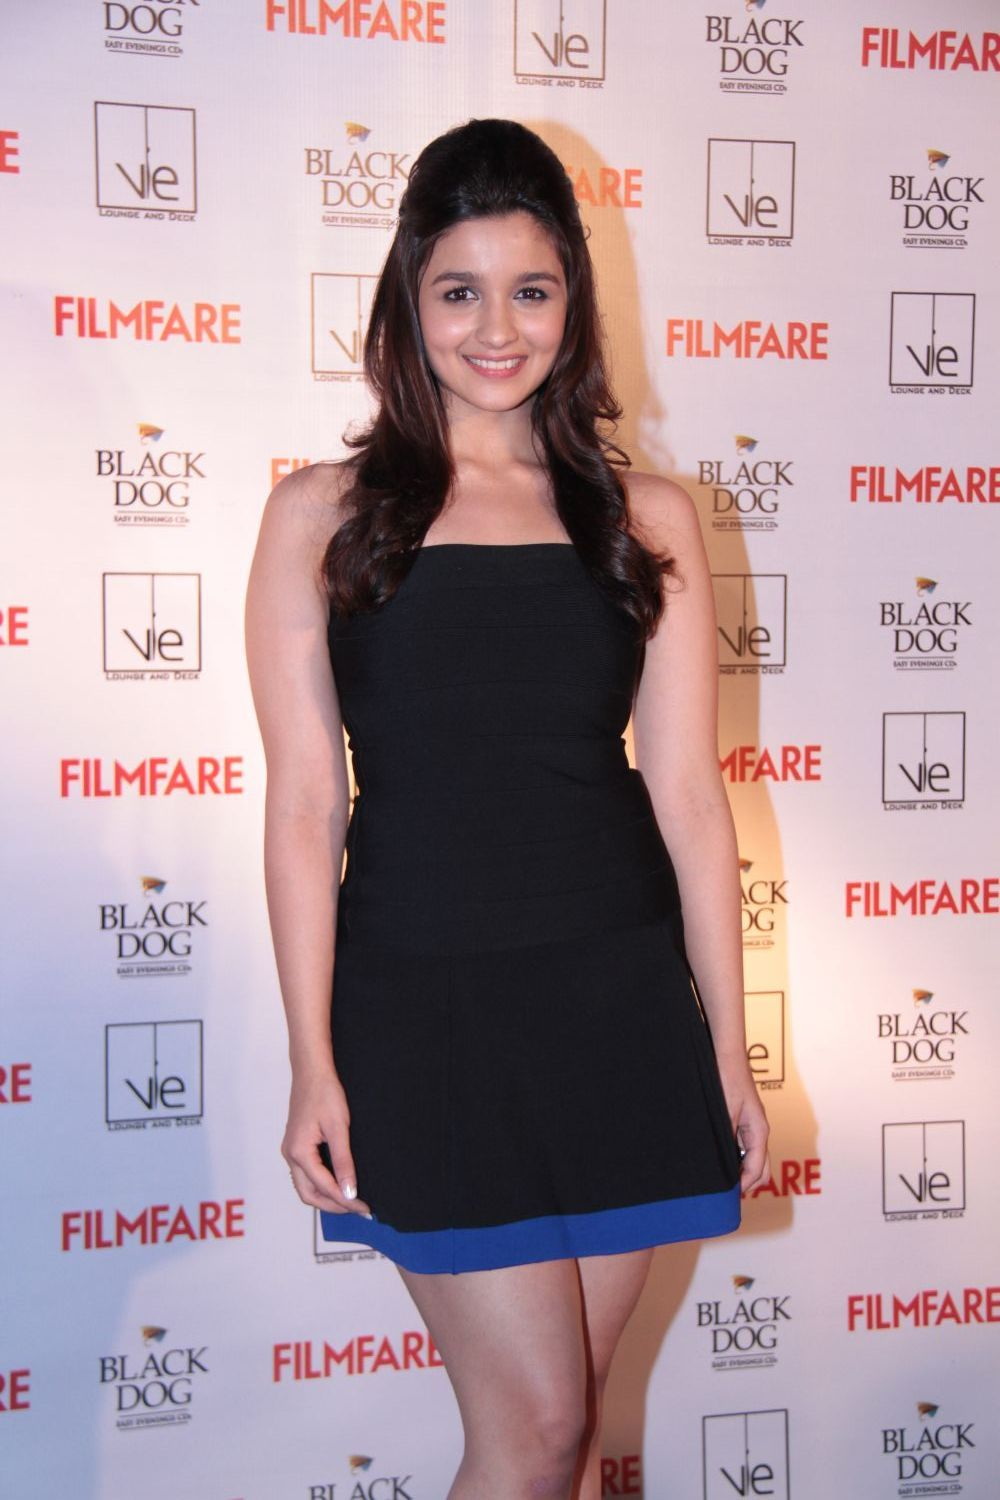 High Quality Bollywood Celebrity Pictures Alia Bhatt -1997